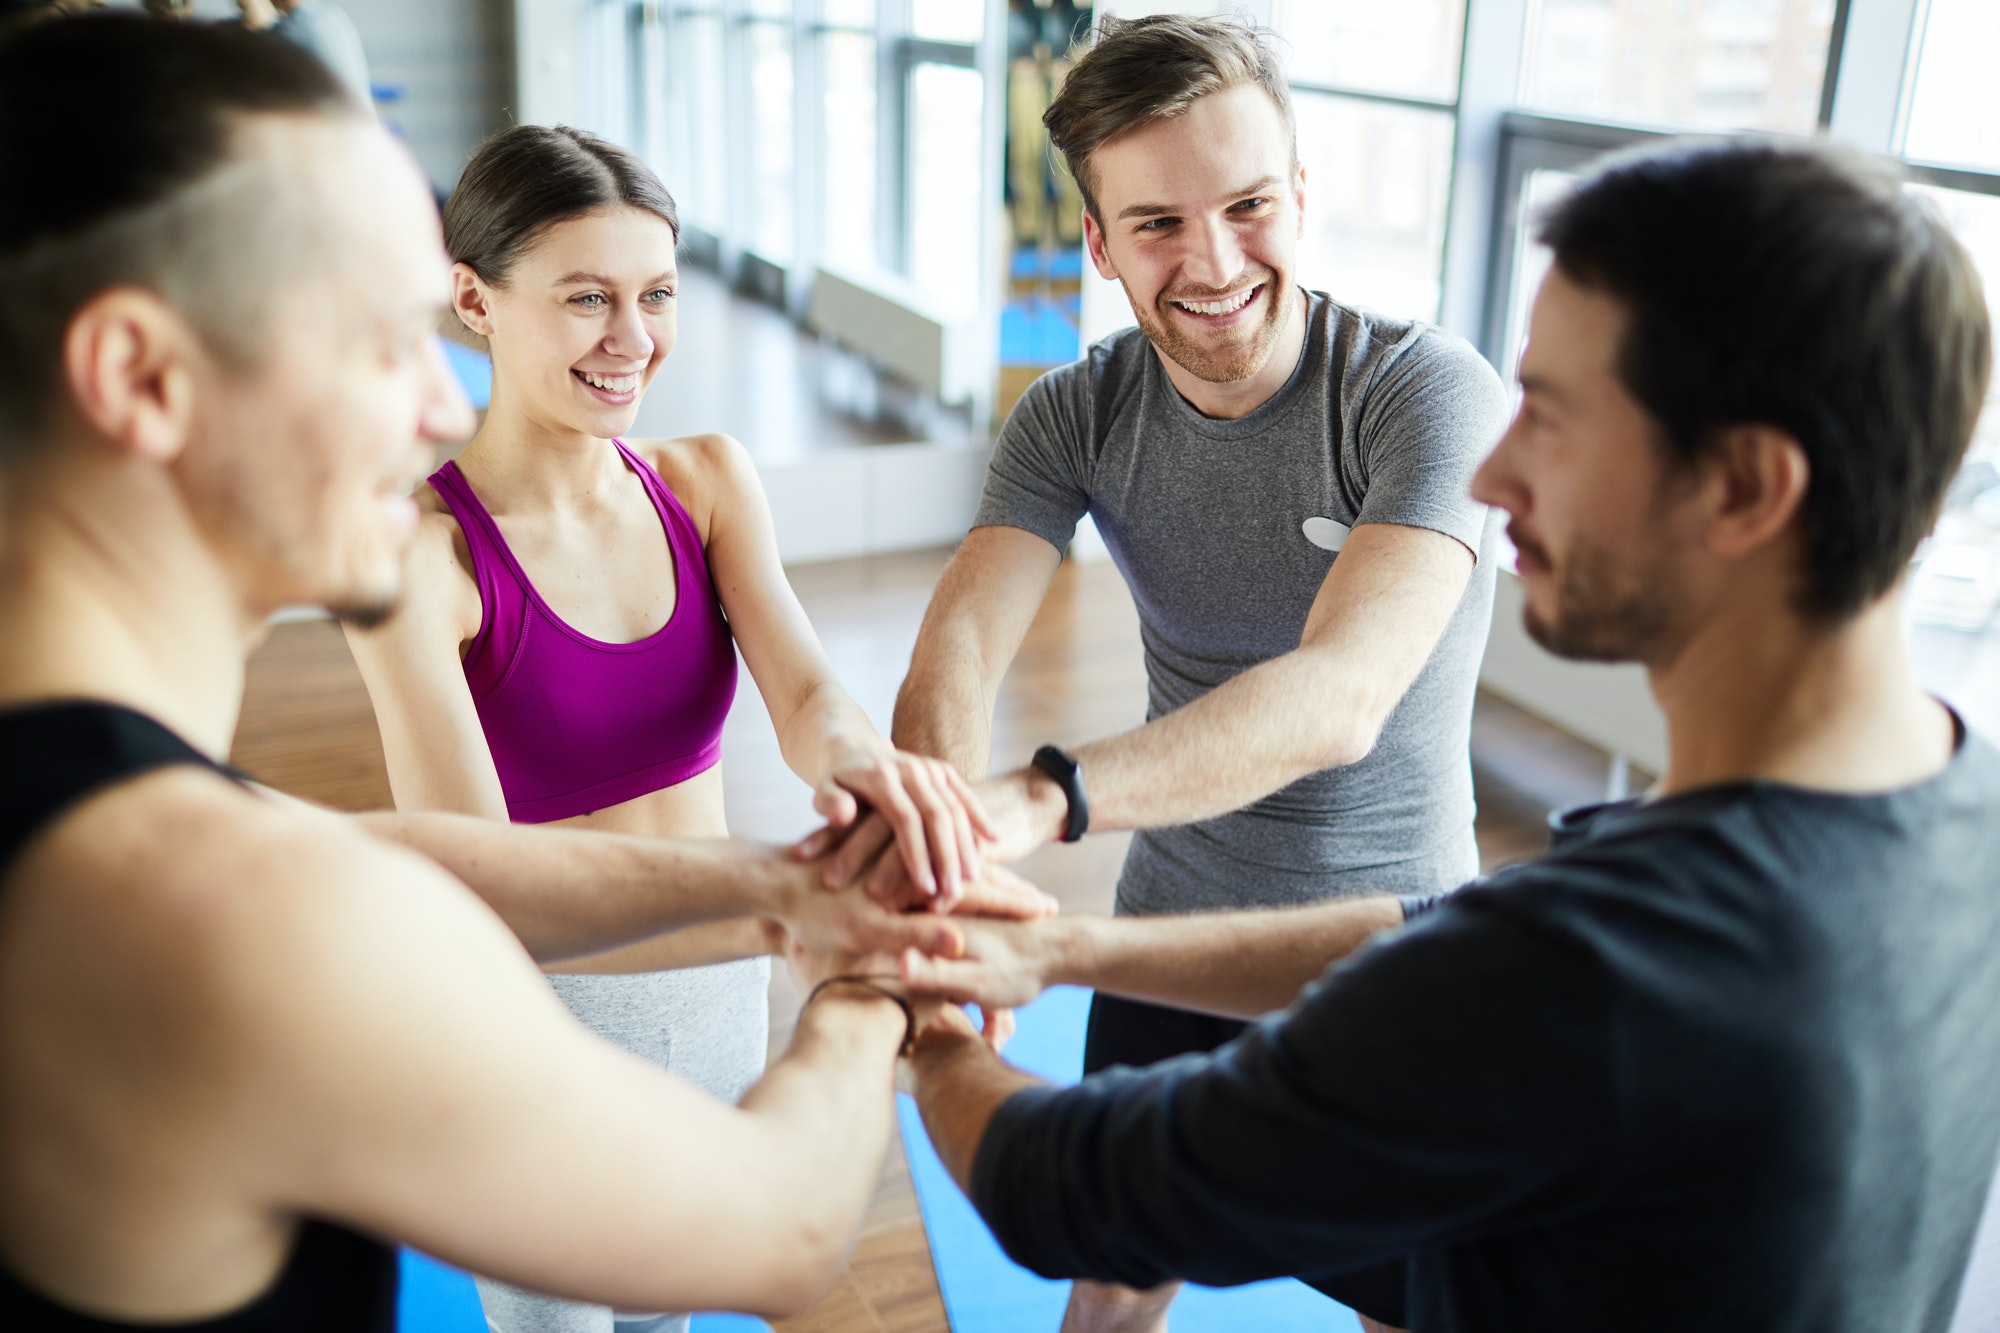 Fitness trainers stacking hands together